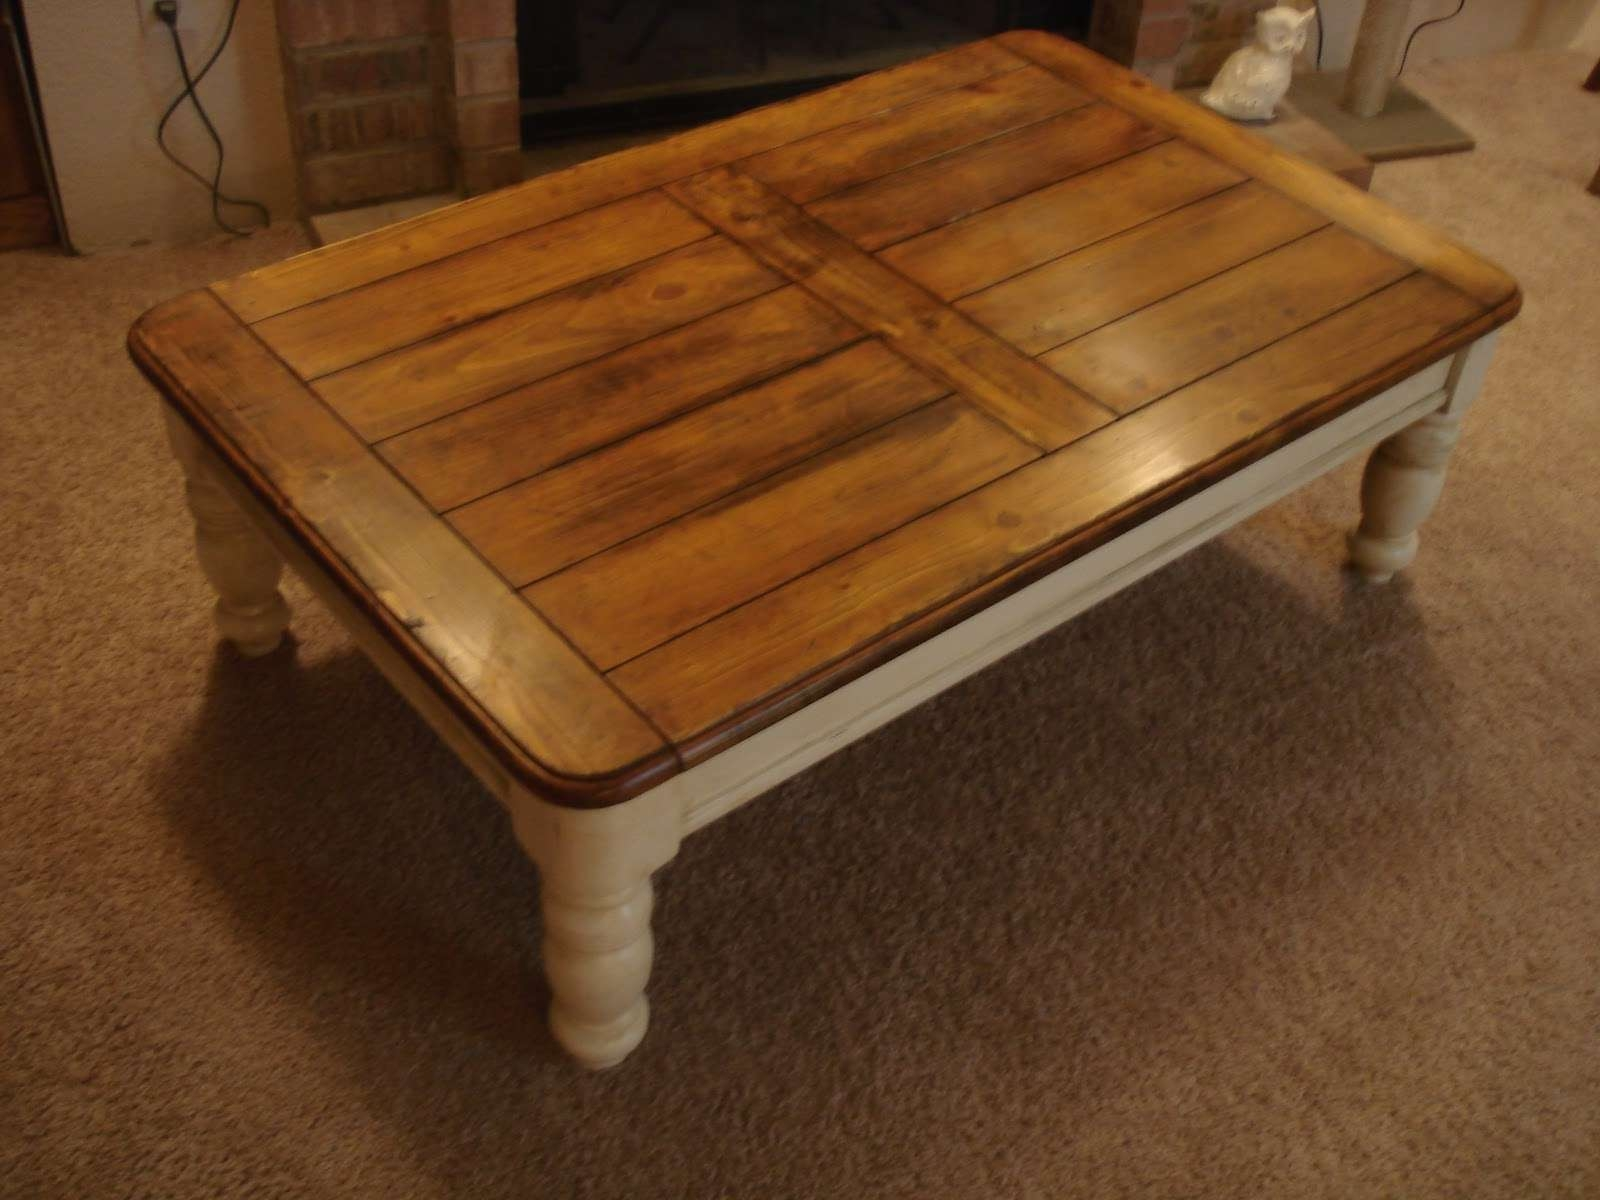 Best And Newest Coffee Tables With Rounded Corners Regarding Square Coffee Table With Rounded Corners • Round Table Ideas (View 2 of 20)